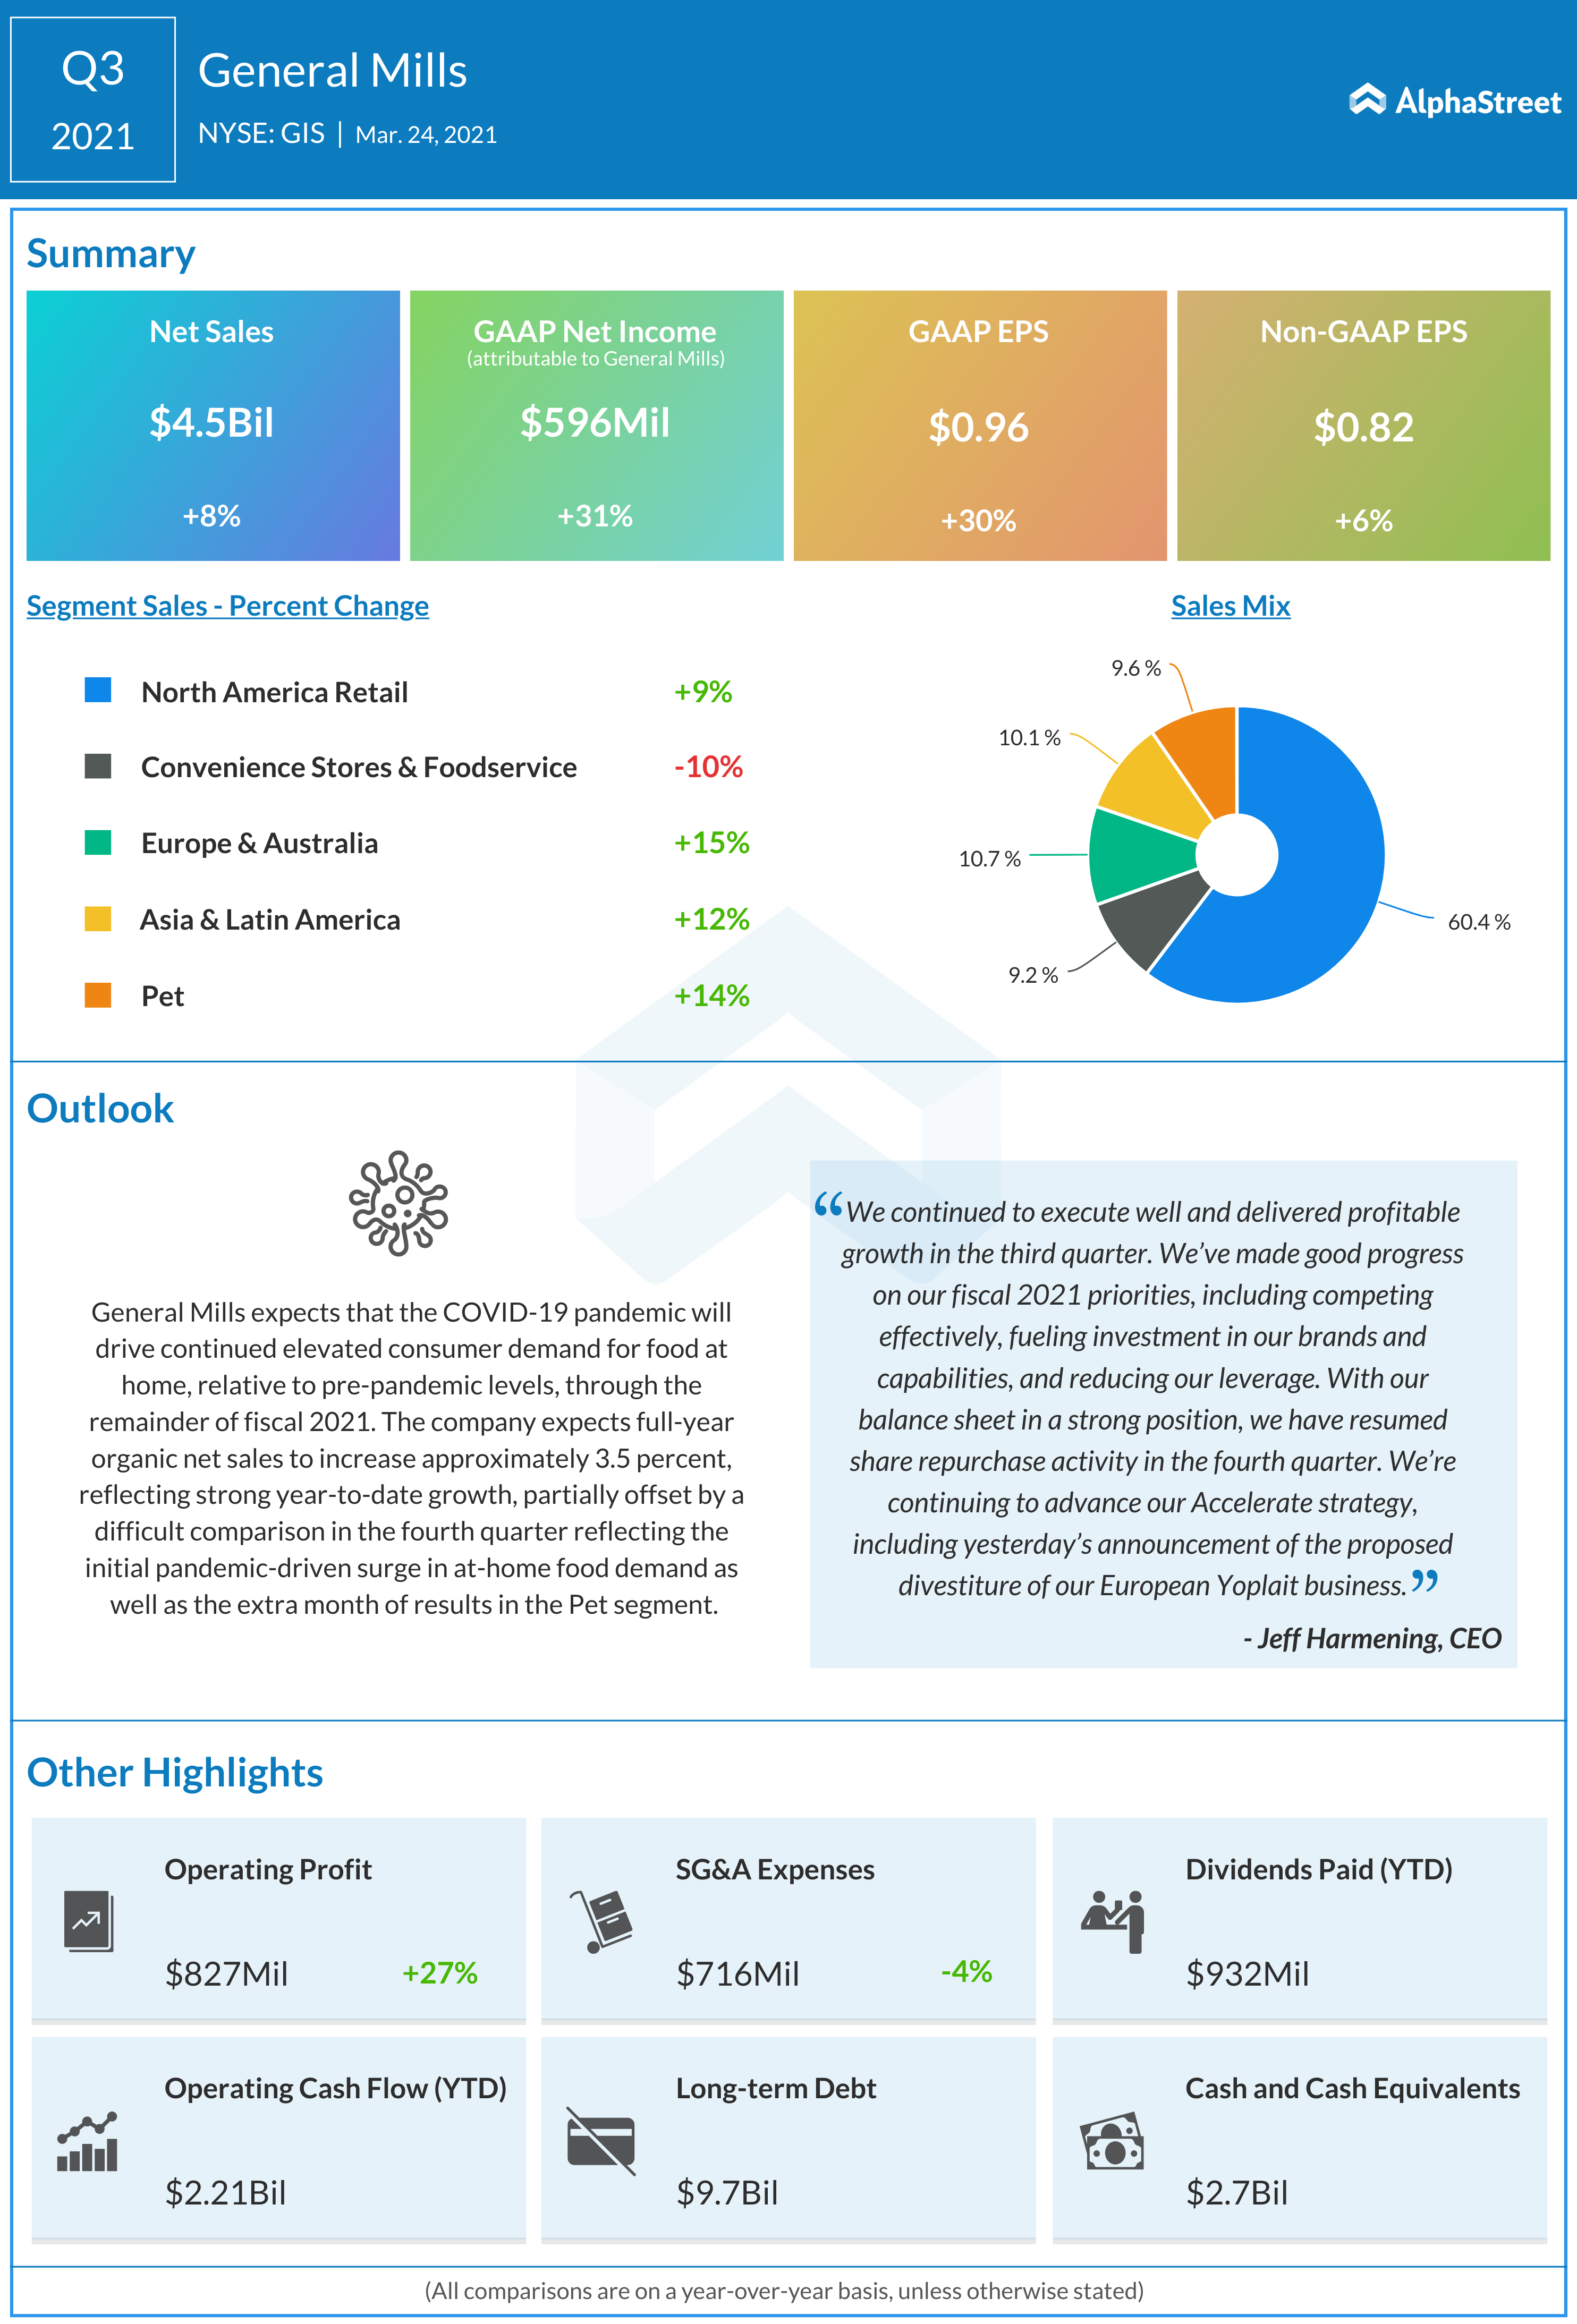 General Mills Q3 2021 earnings infographic